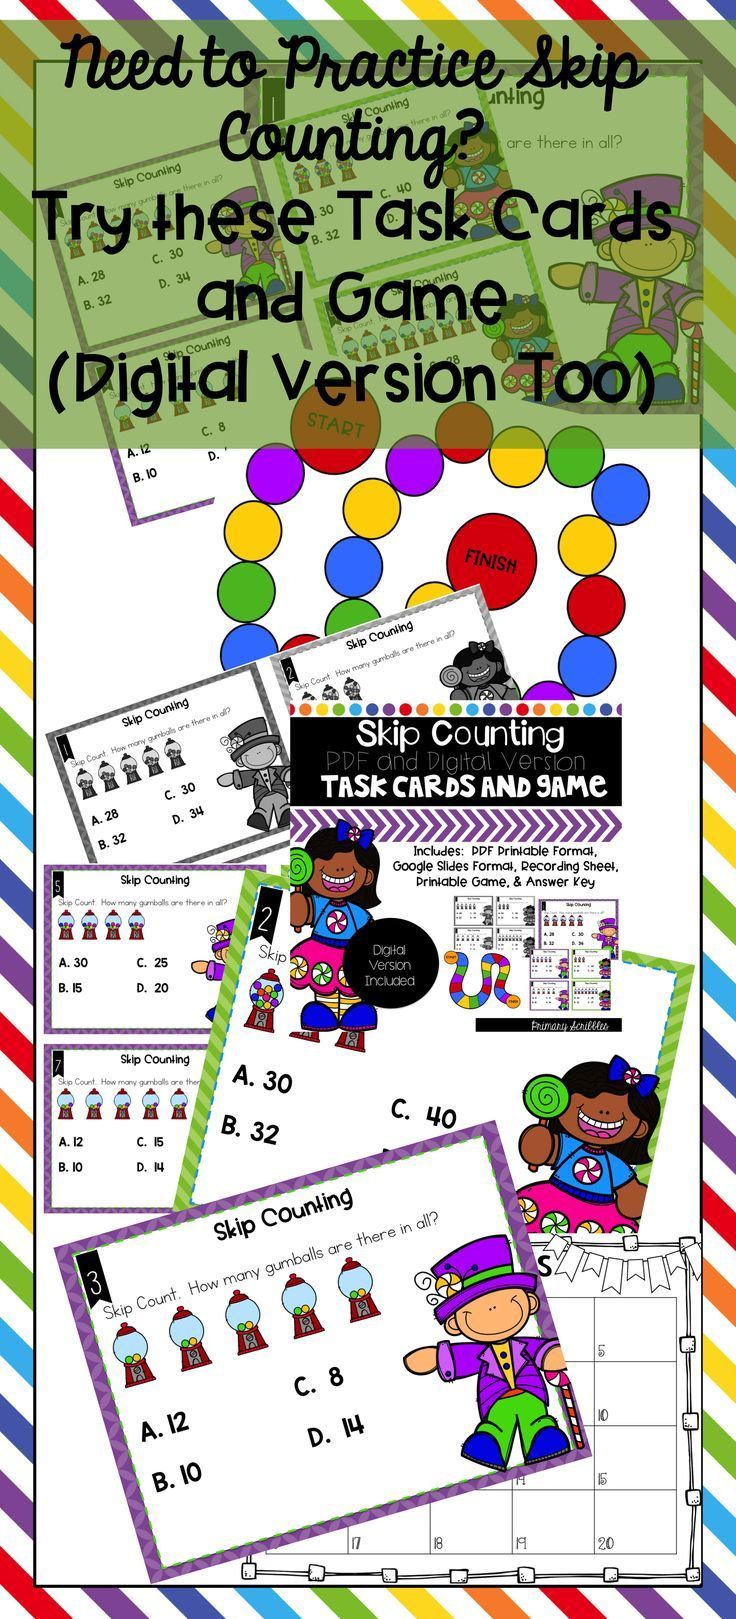 A fun way to practice skip counting.  Can be used during center time or whole group time.  Perfect to make learning fun and engaging.